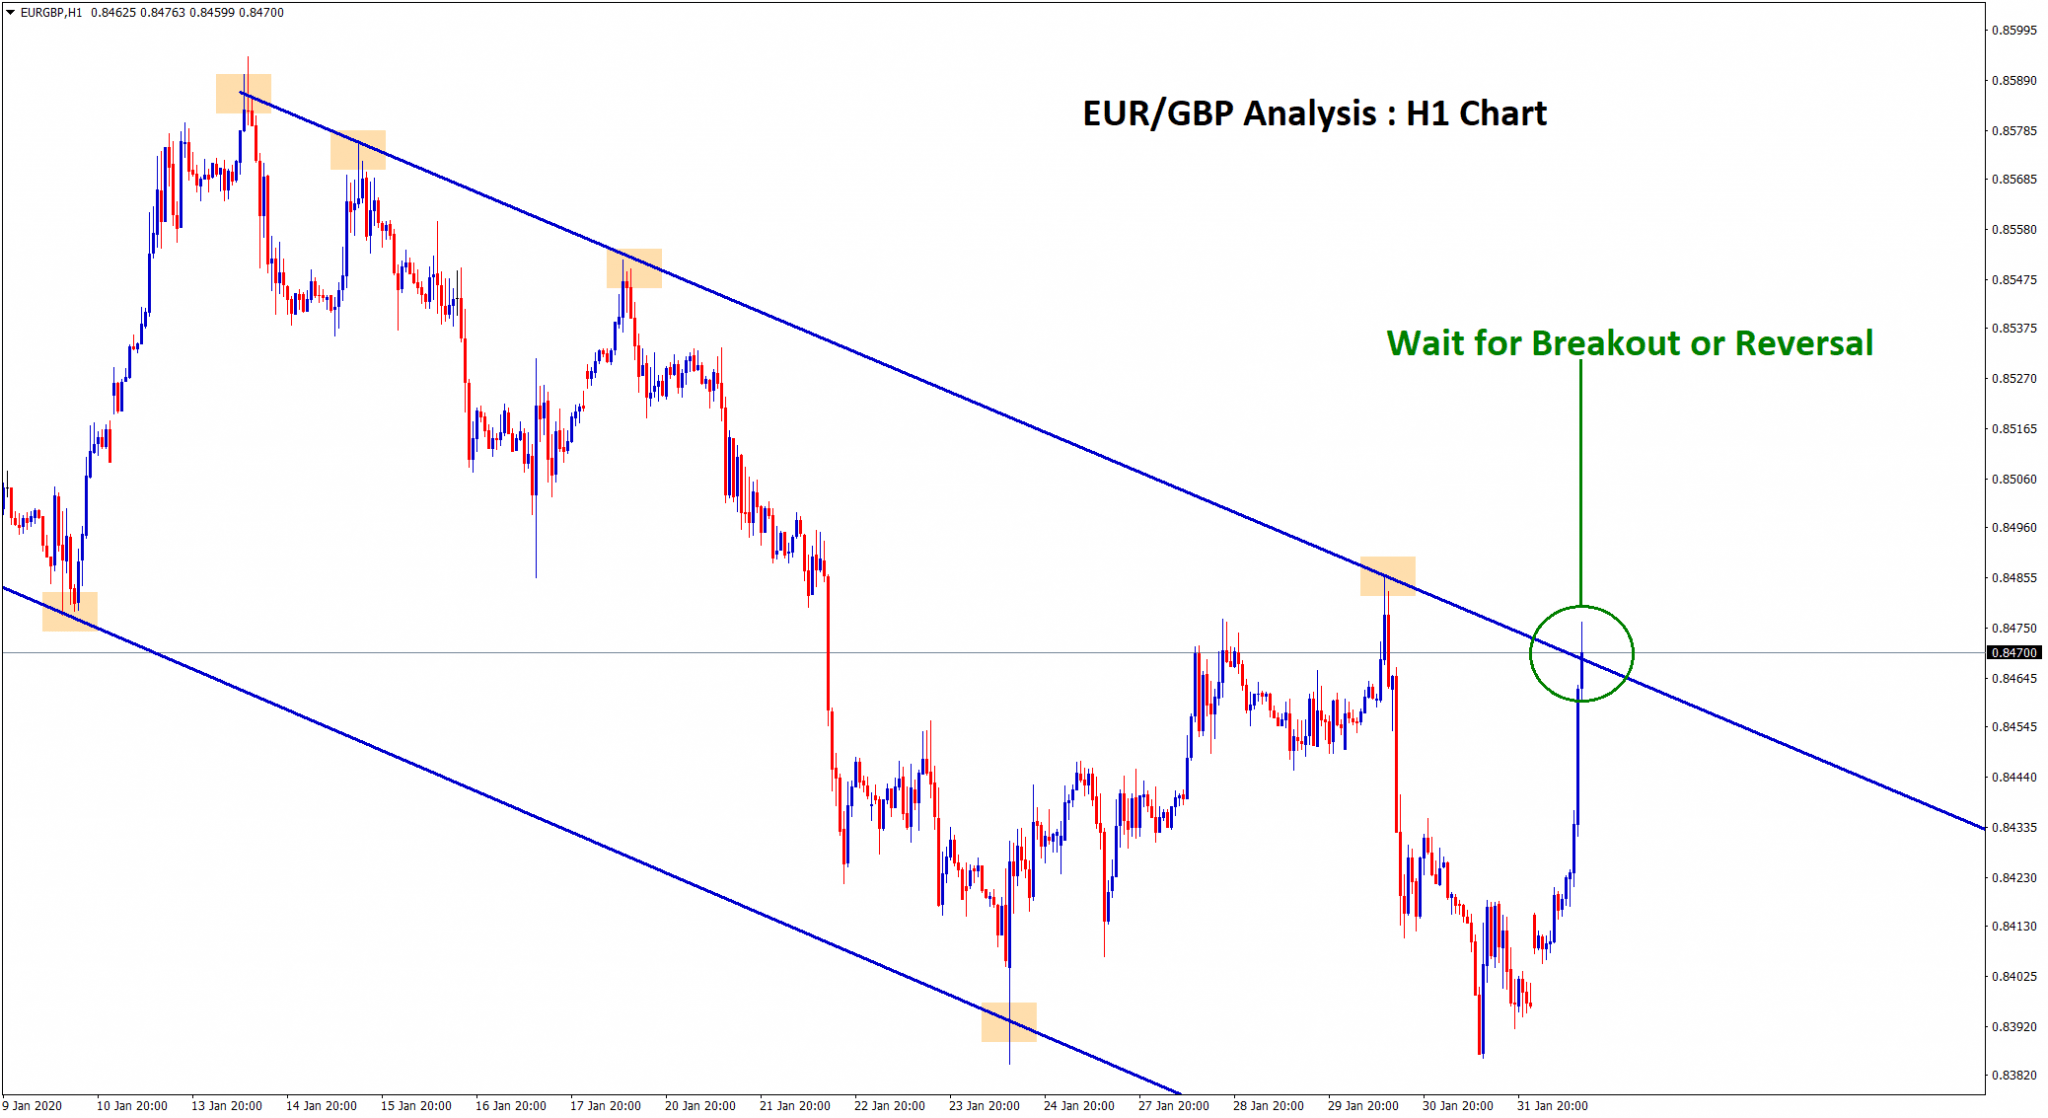 eur gbp is moving in a downtrend